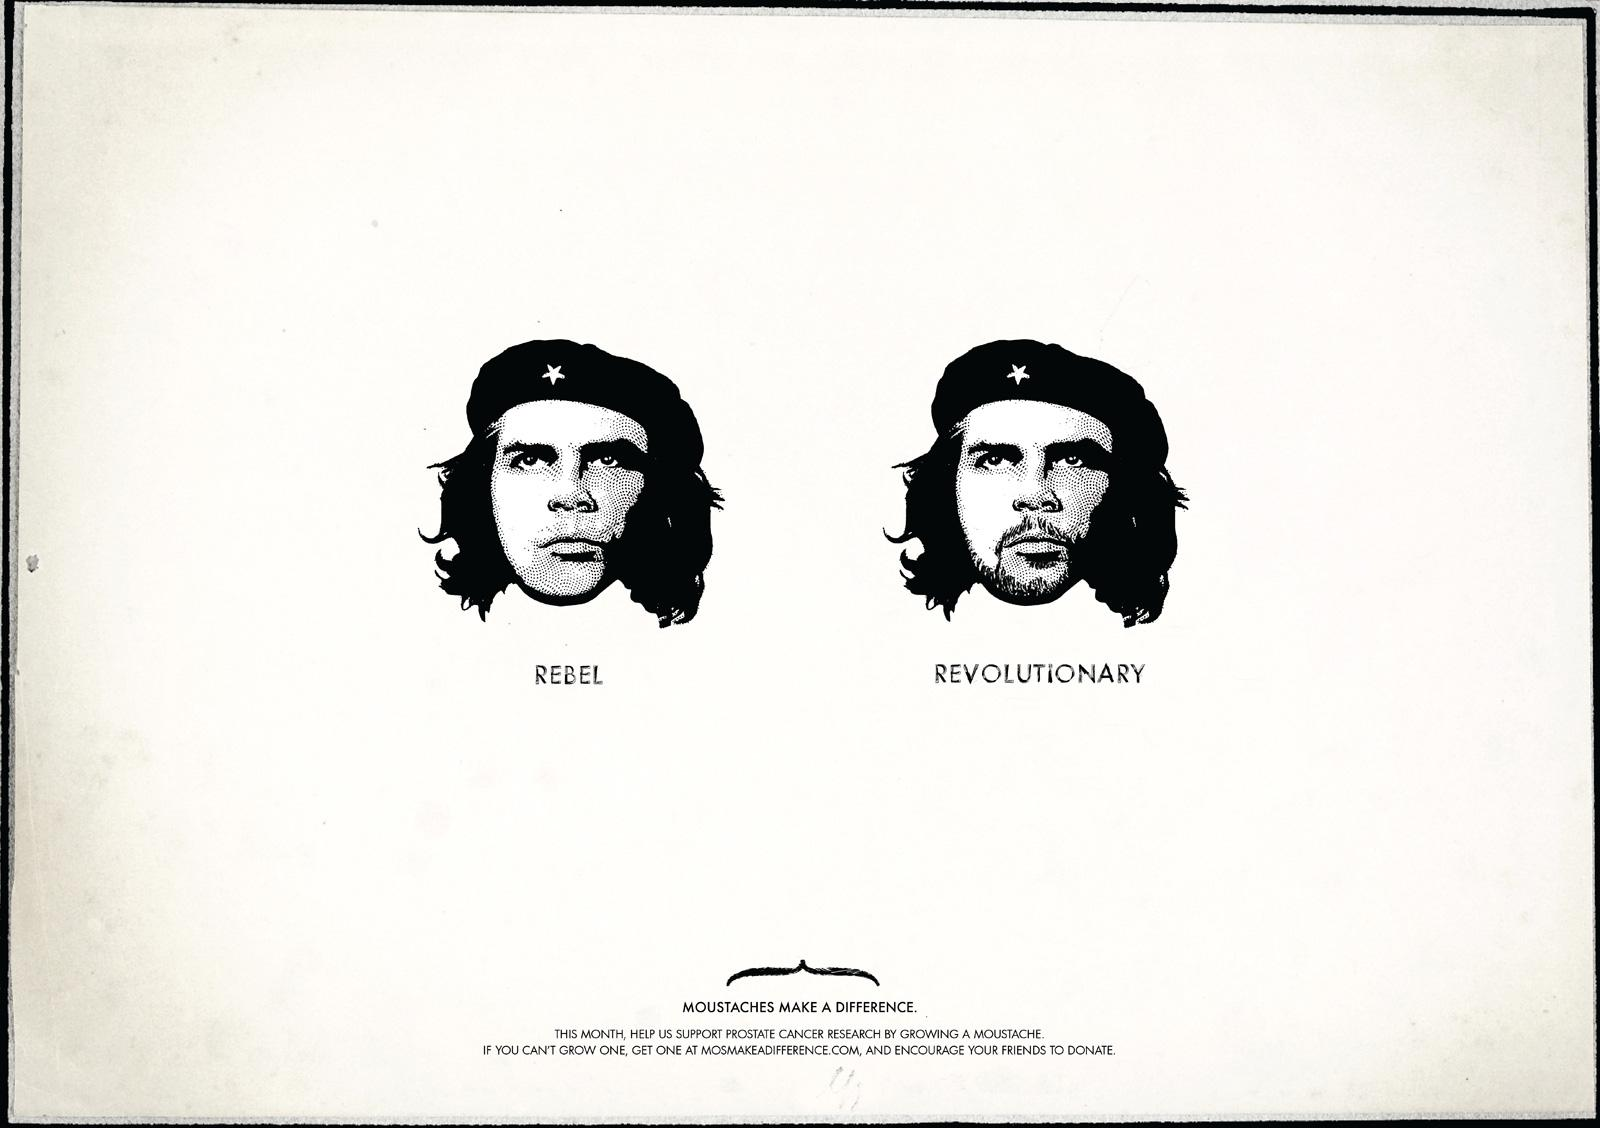 Moustaches Make A Difference Print Ad -  Che Guevara